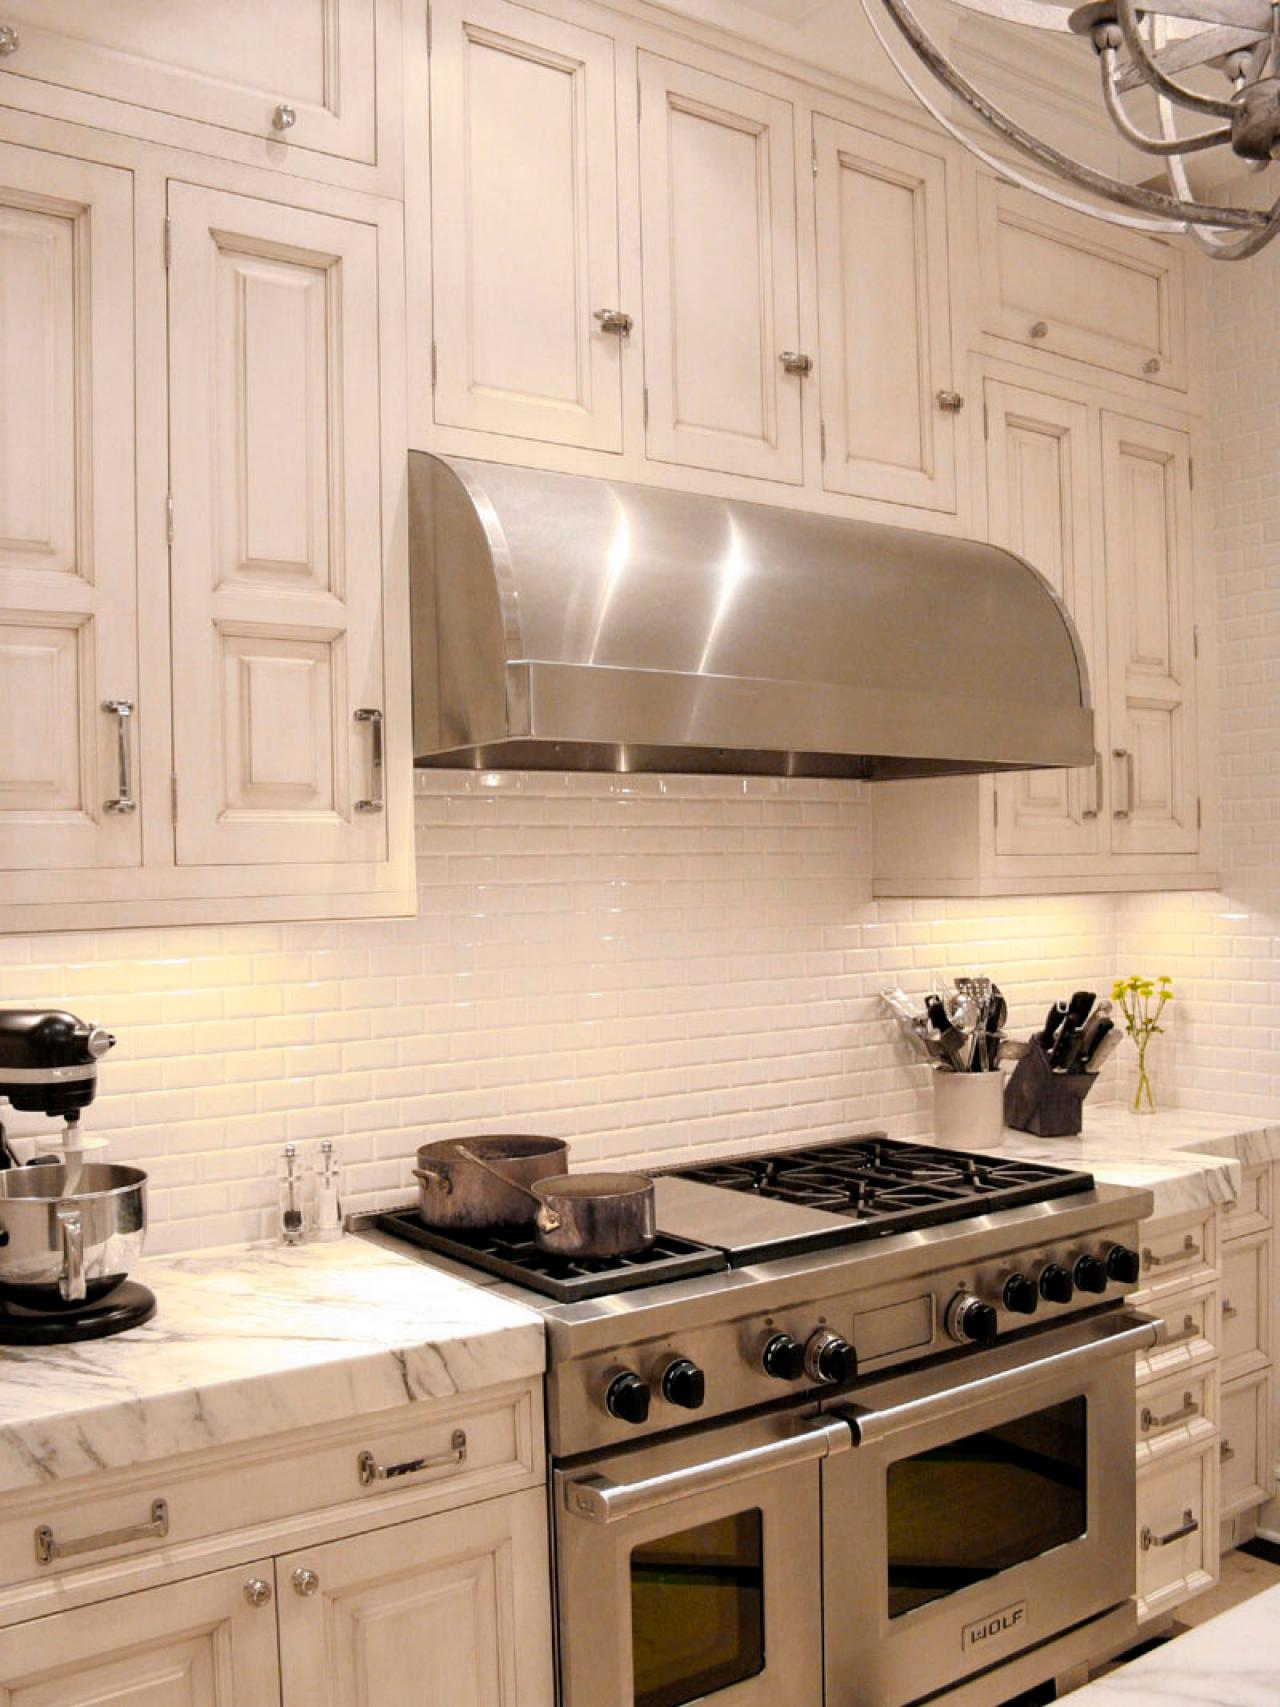 Transitional Contrast The Stainless Steel Hood